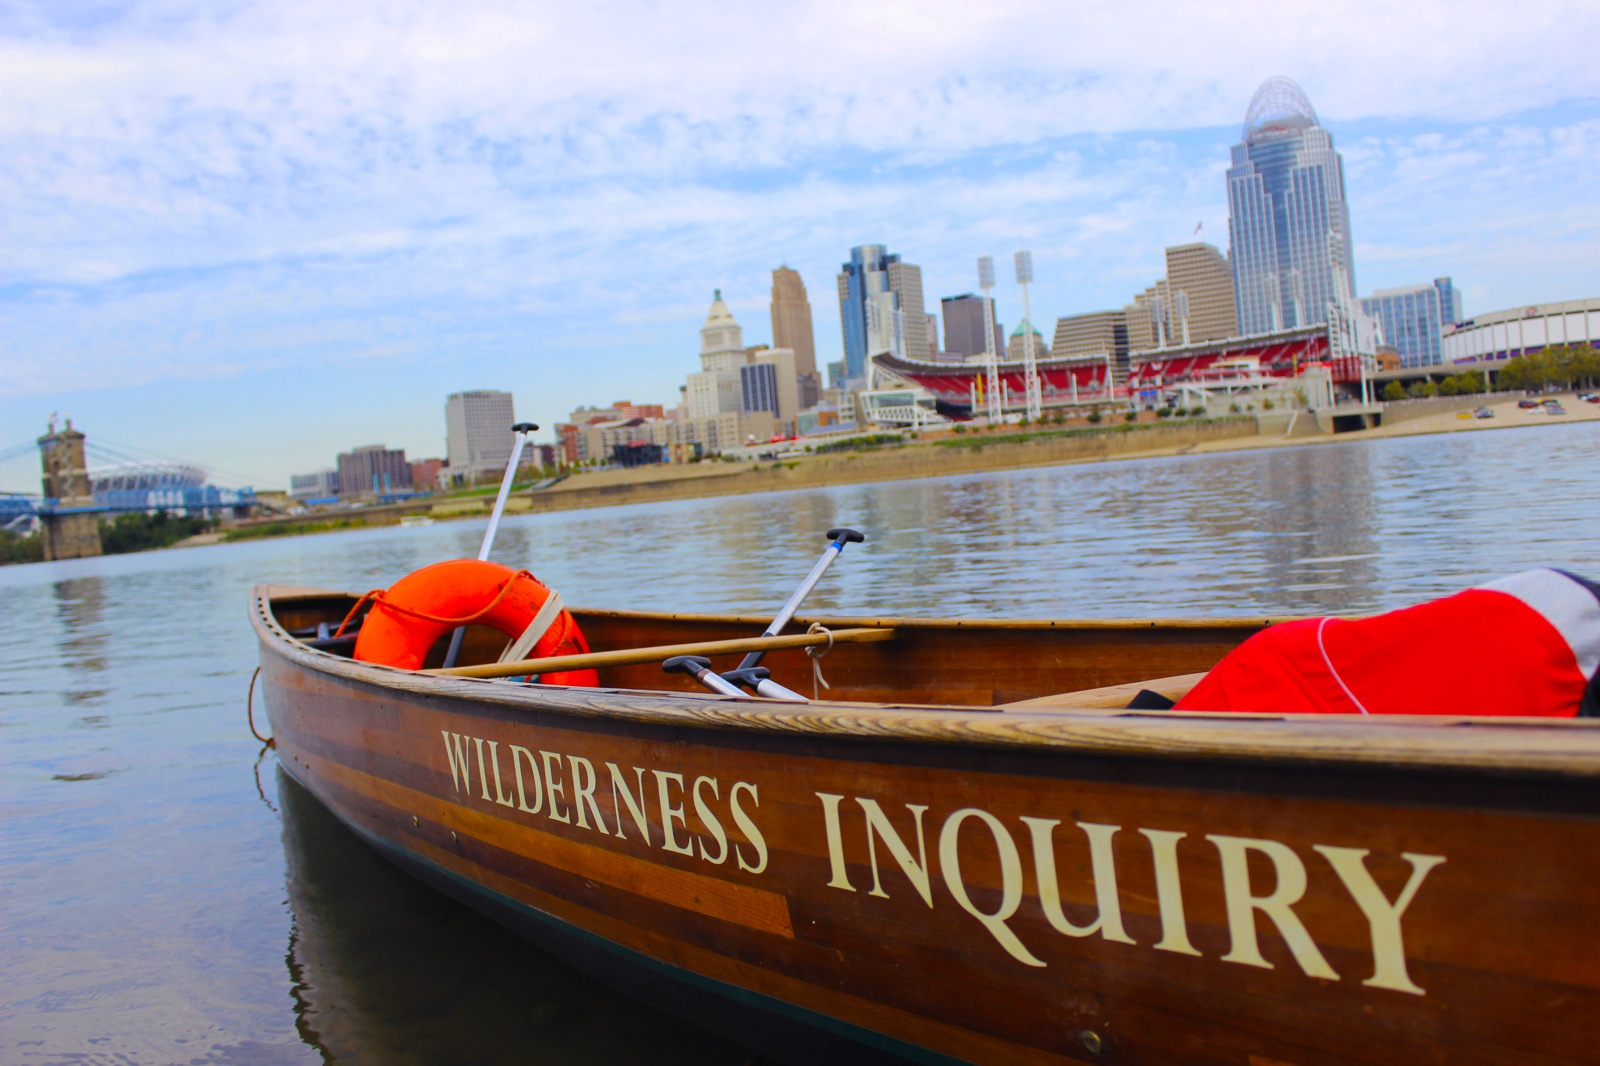 a photo of an empty canoe on the water with the Cincinnati skyline in the backdrop